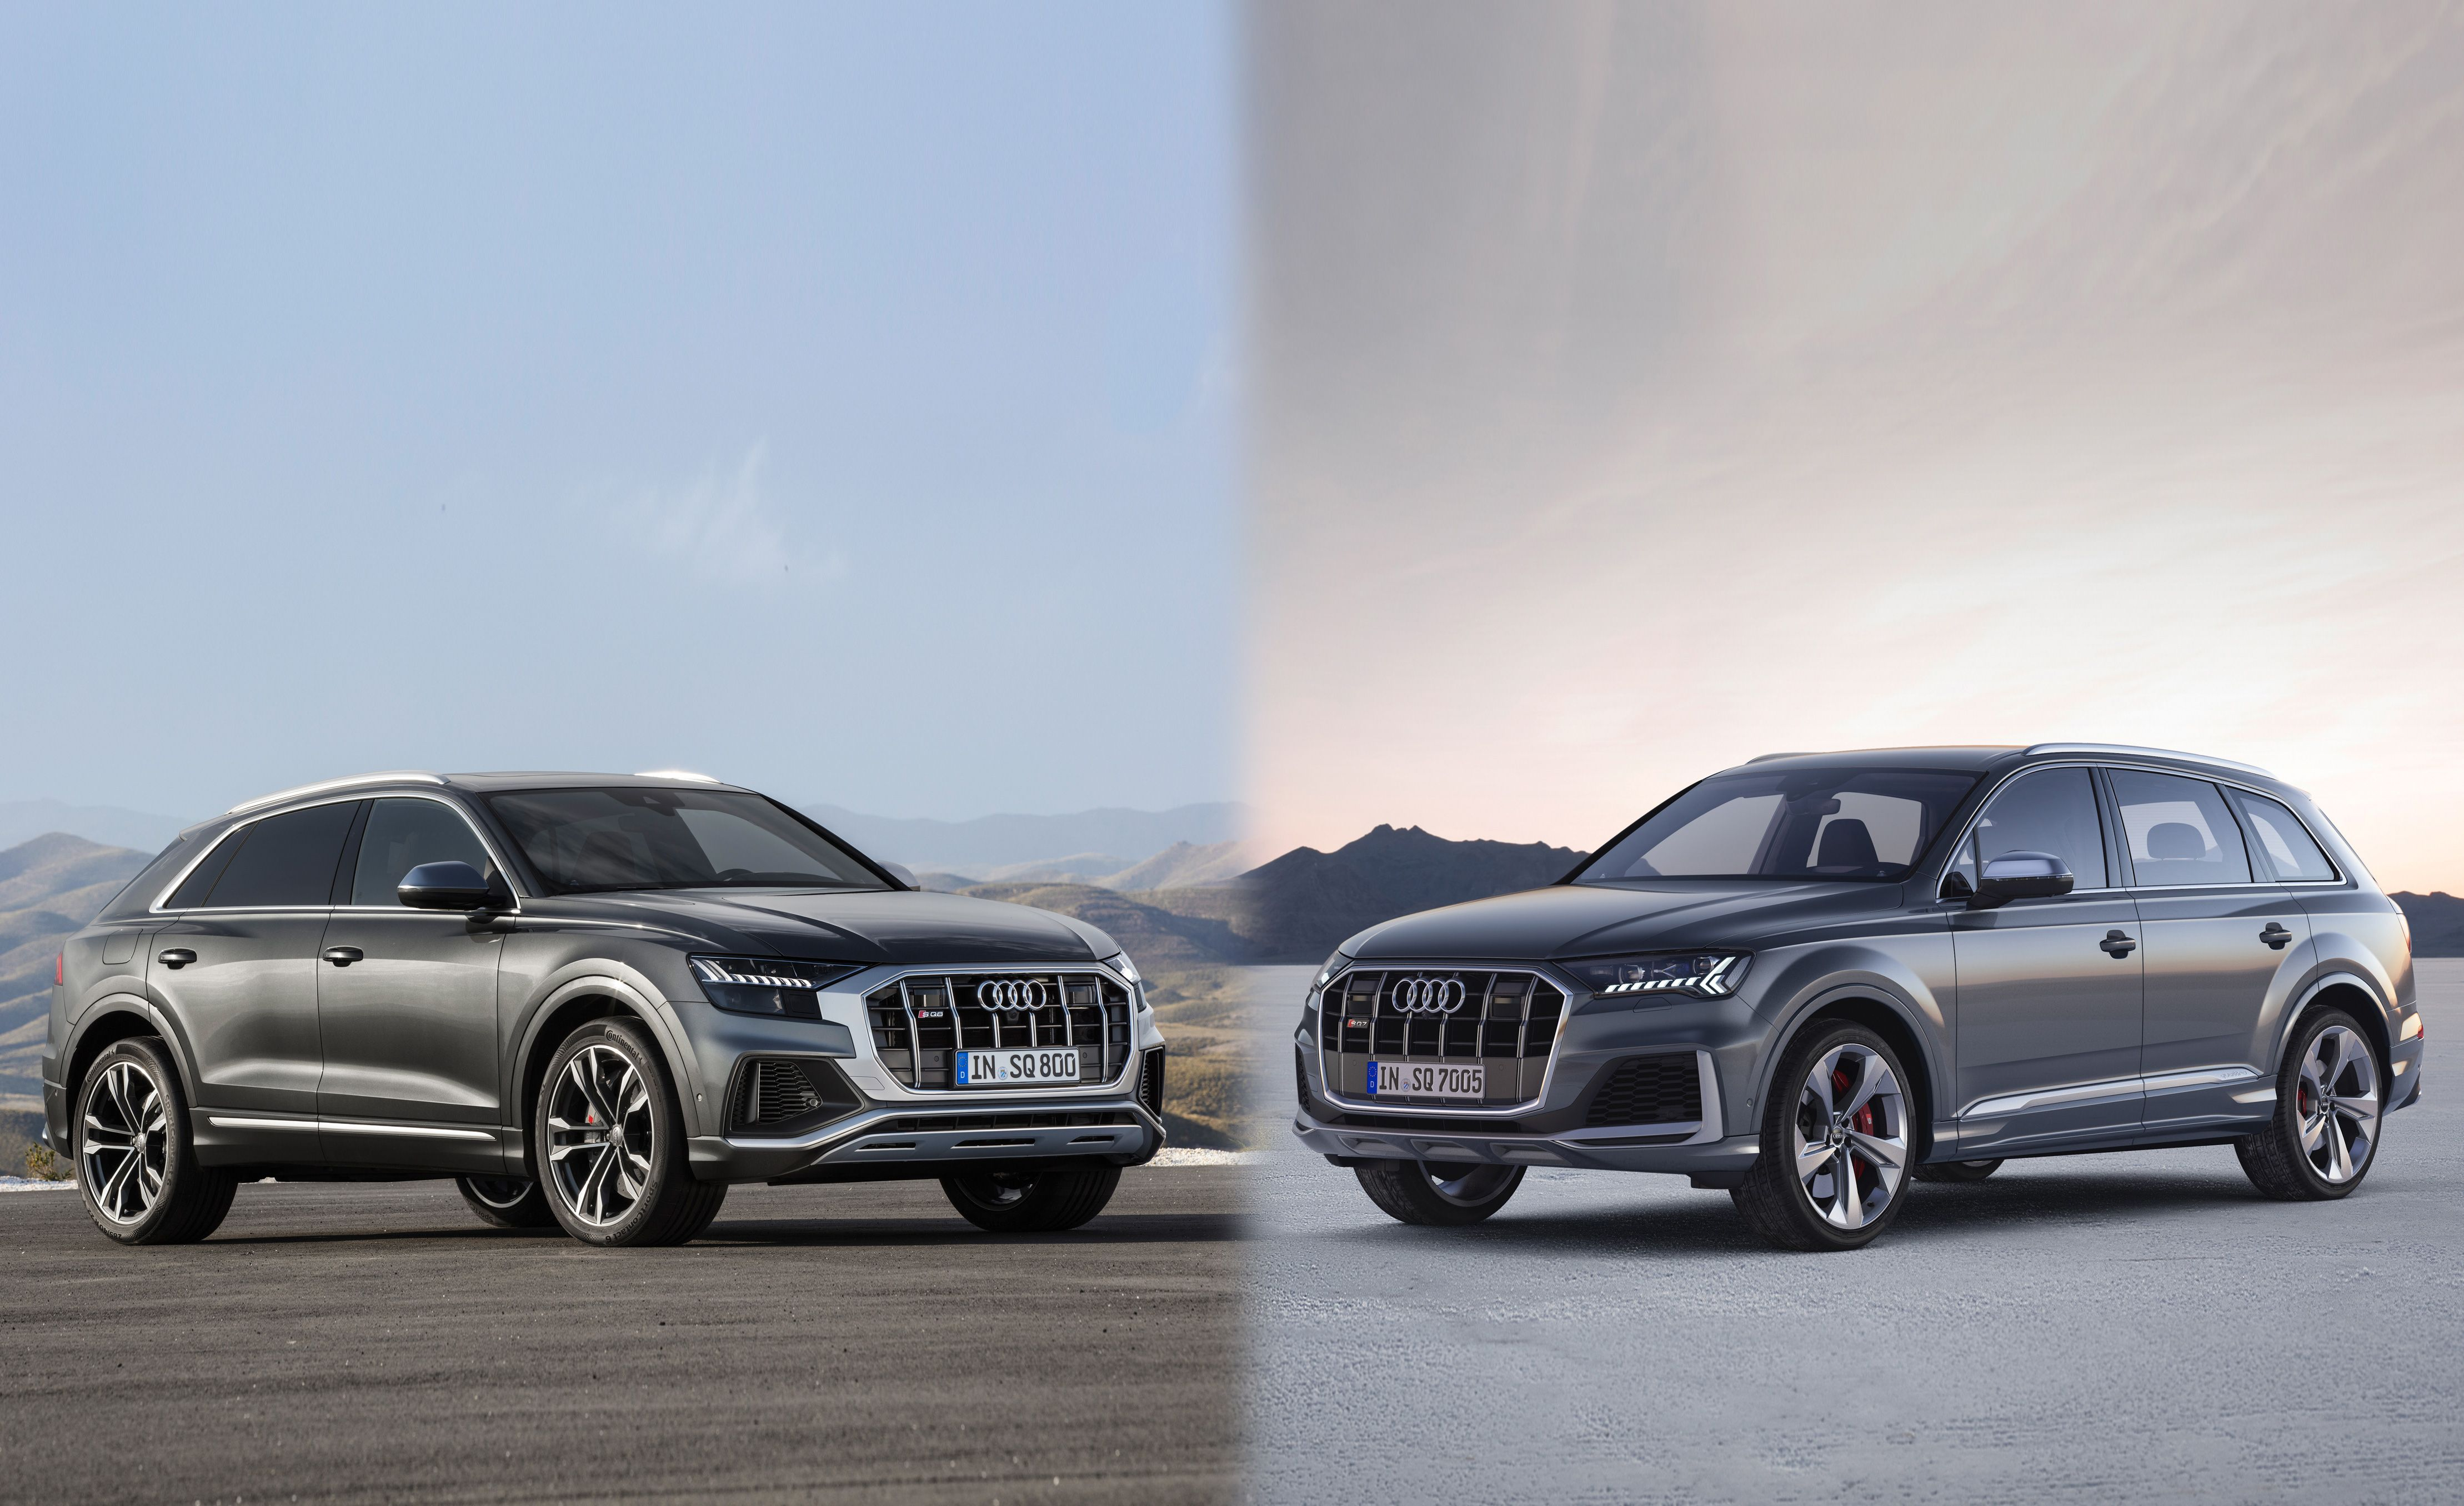 The German car manufacturer has made an exception for the United States, making its SUVs gas-powered for the market.